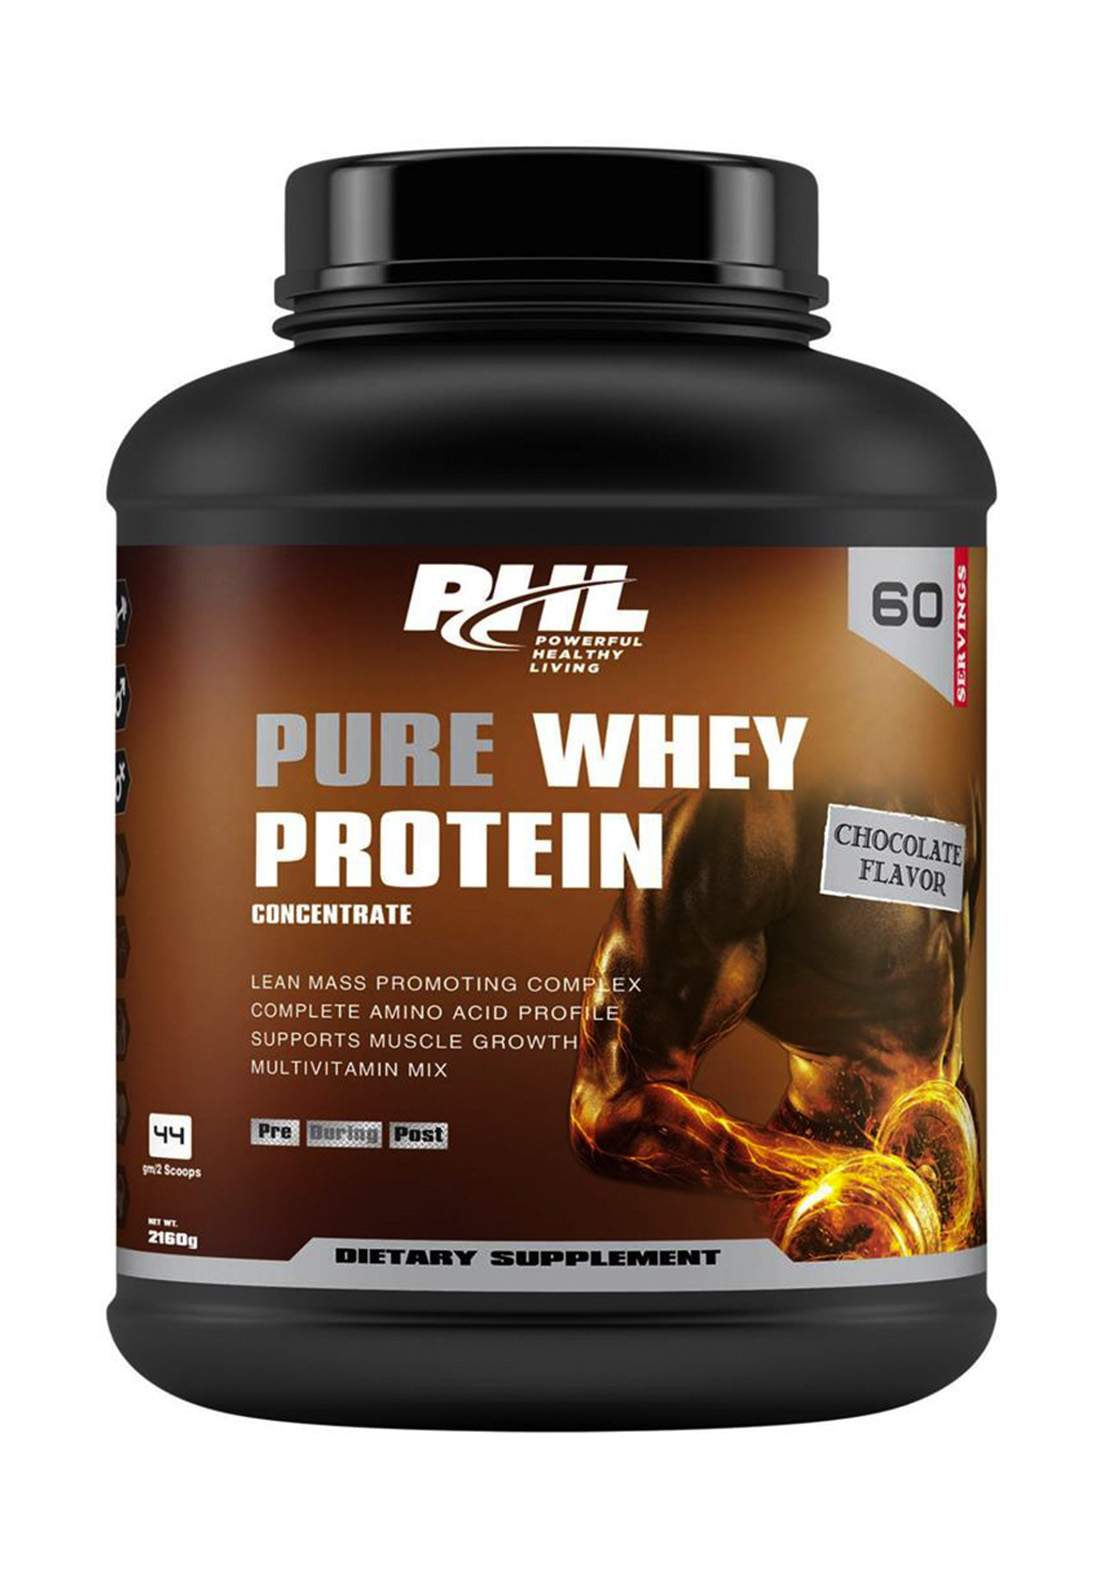 Phl Pure Whey Protein Chocolate 60 Servings 2160 g بروتين مكمل غذائي